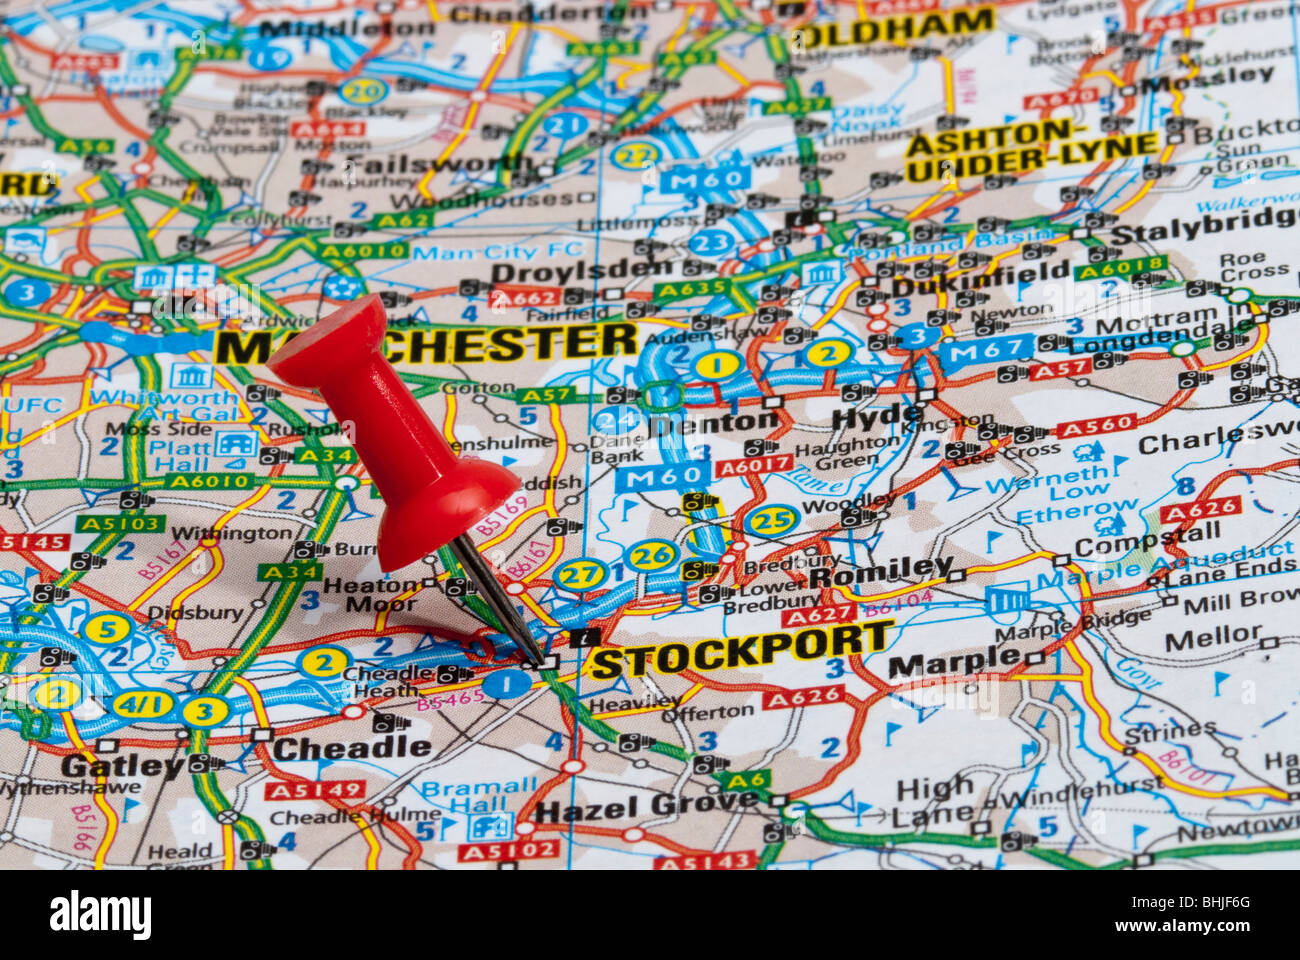 red map pin in road map pointing to city of Stockport Stock Photo